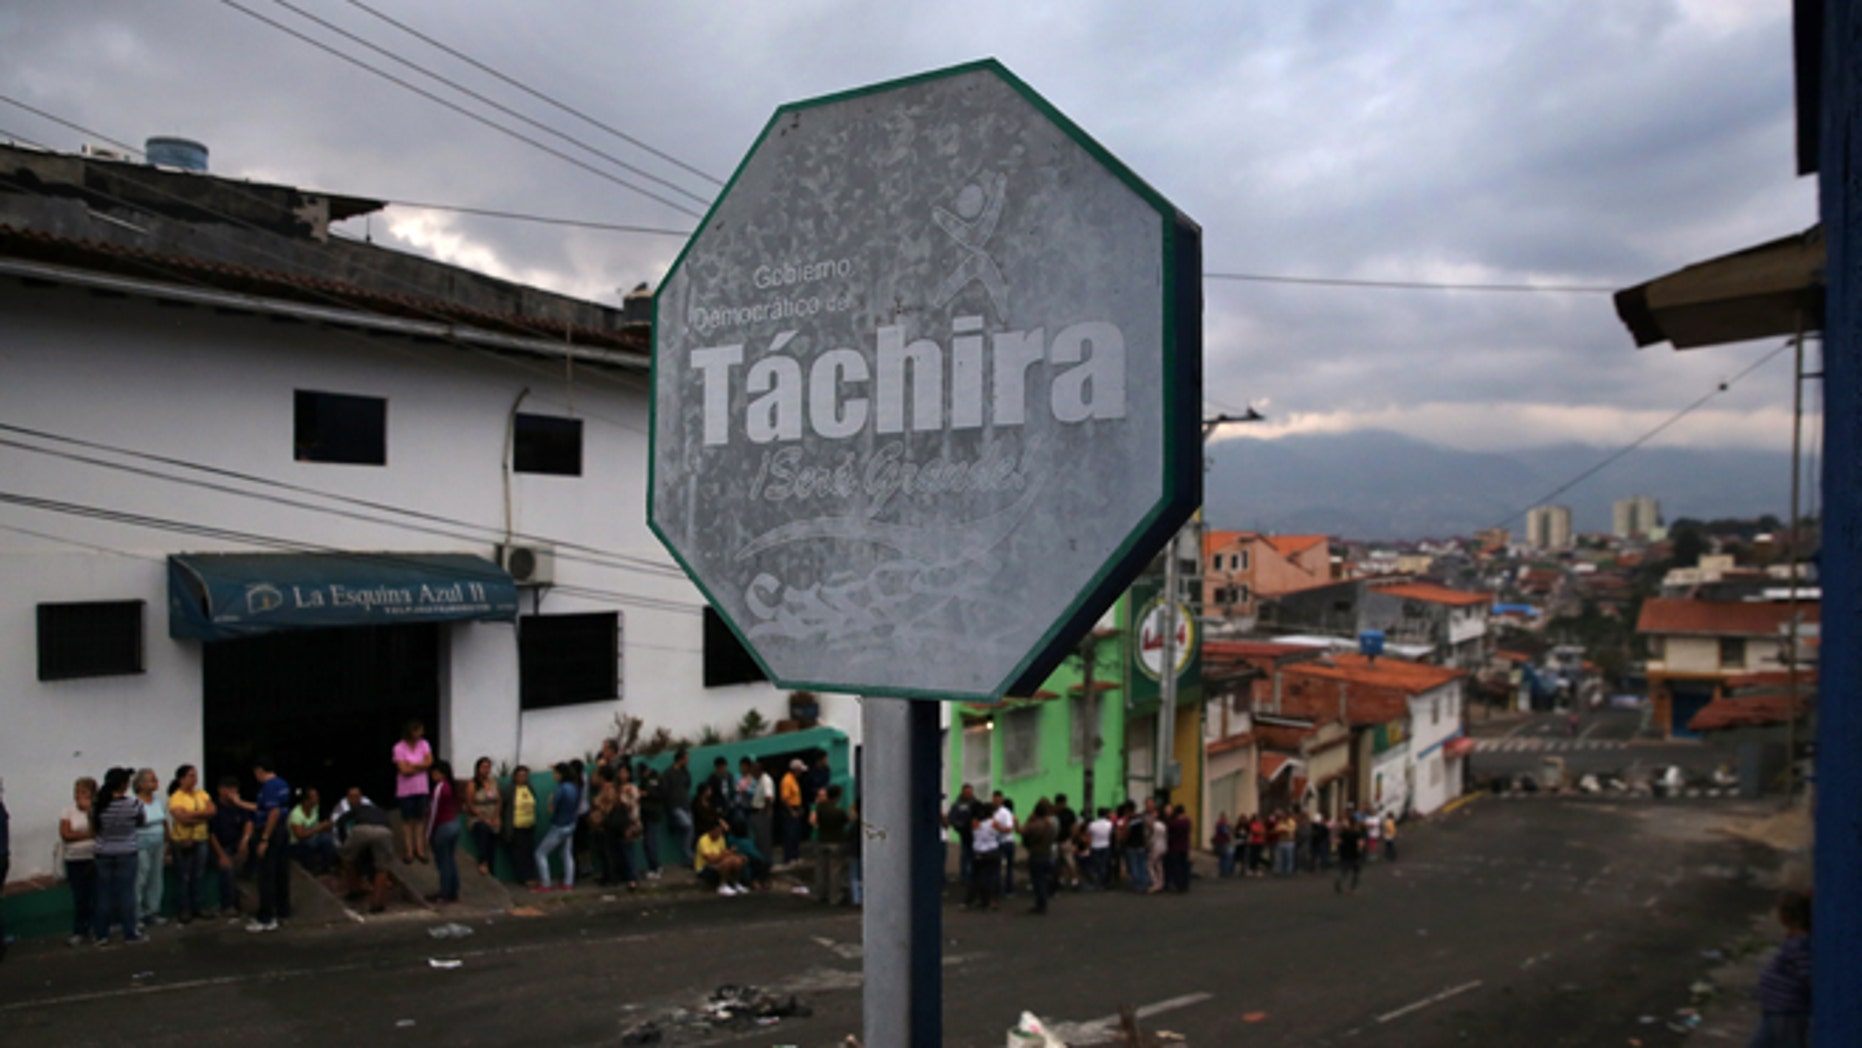 SAN CRISTOBAL, VENEZUELA - MARCH 09:  A line of people queue to buy basic foodstuffs at dawn on March 9, 2014 in San Cristobal, the capital of Tachira state, Venezuela. People often start lining up before 5am to buy items like flour, milk and sugar, which are rationed and in short supply, especially in Tachira, which borders Colombia. Tachira has been a focal point for anti-government protests nationwide.  (Photo by John Moore/Getty Images)